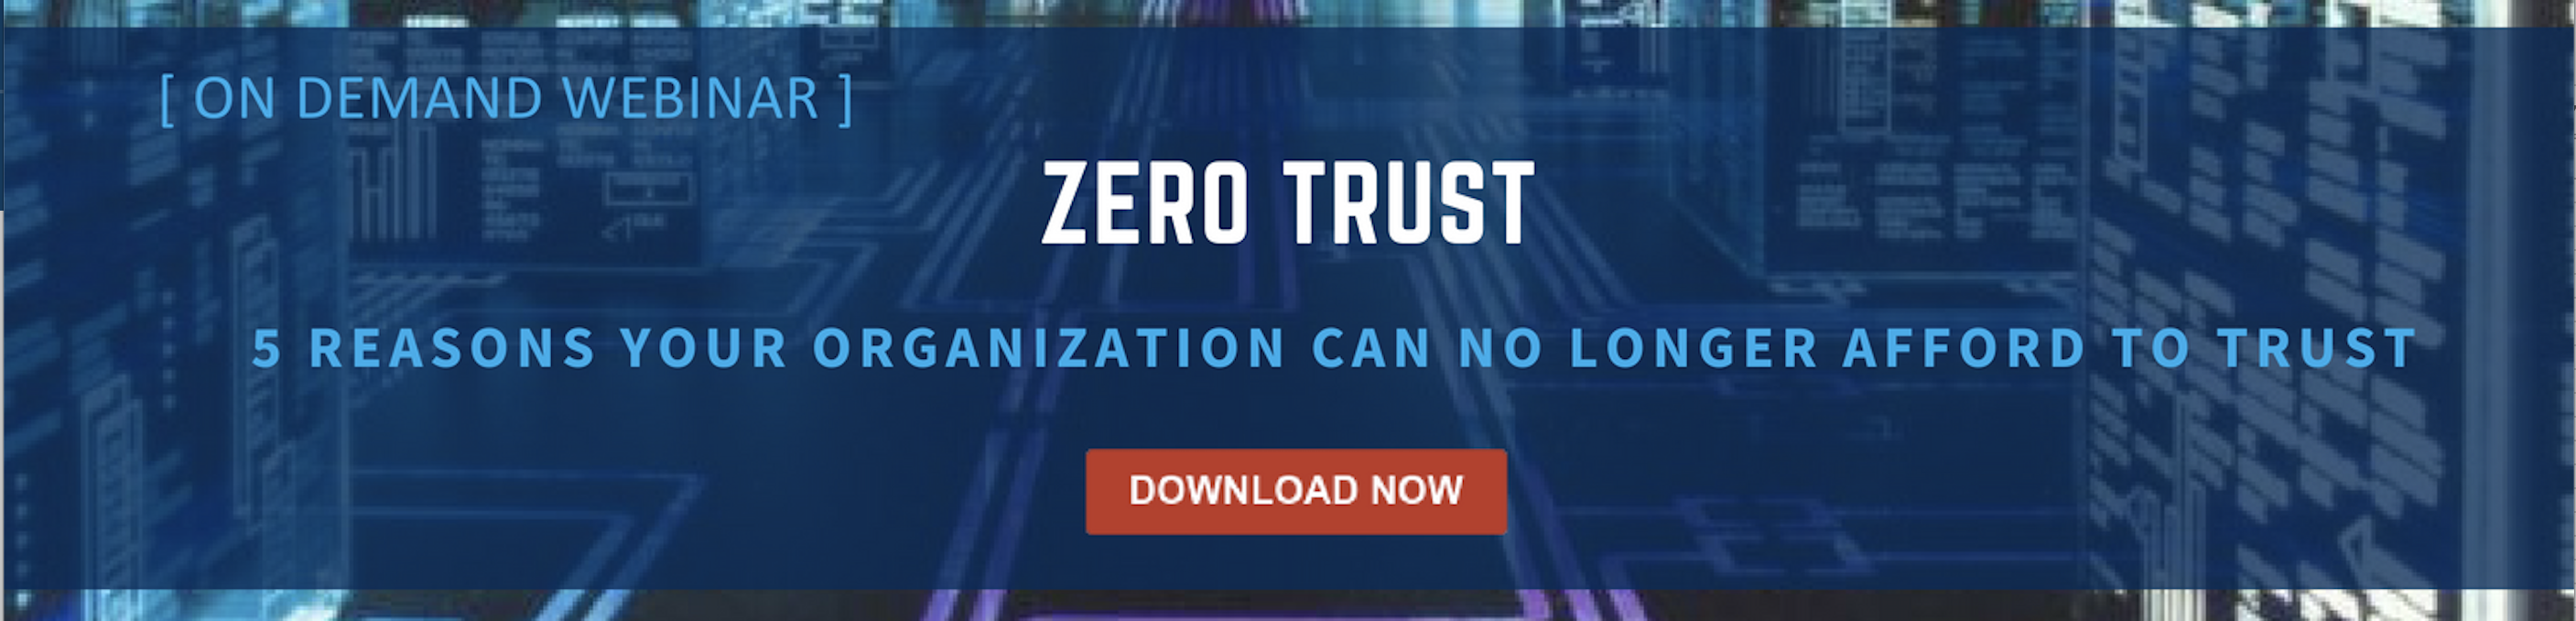 Download the Zero Trust Webinar on Demand